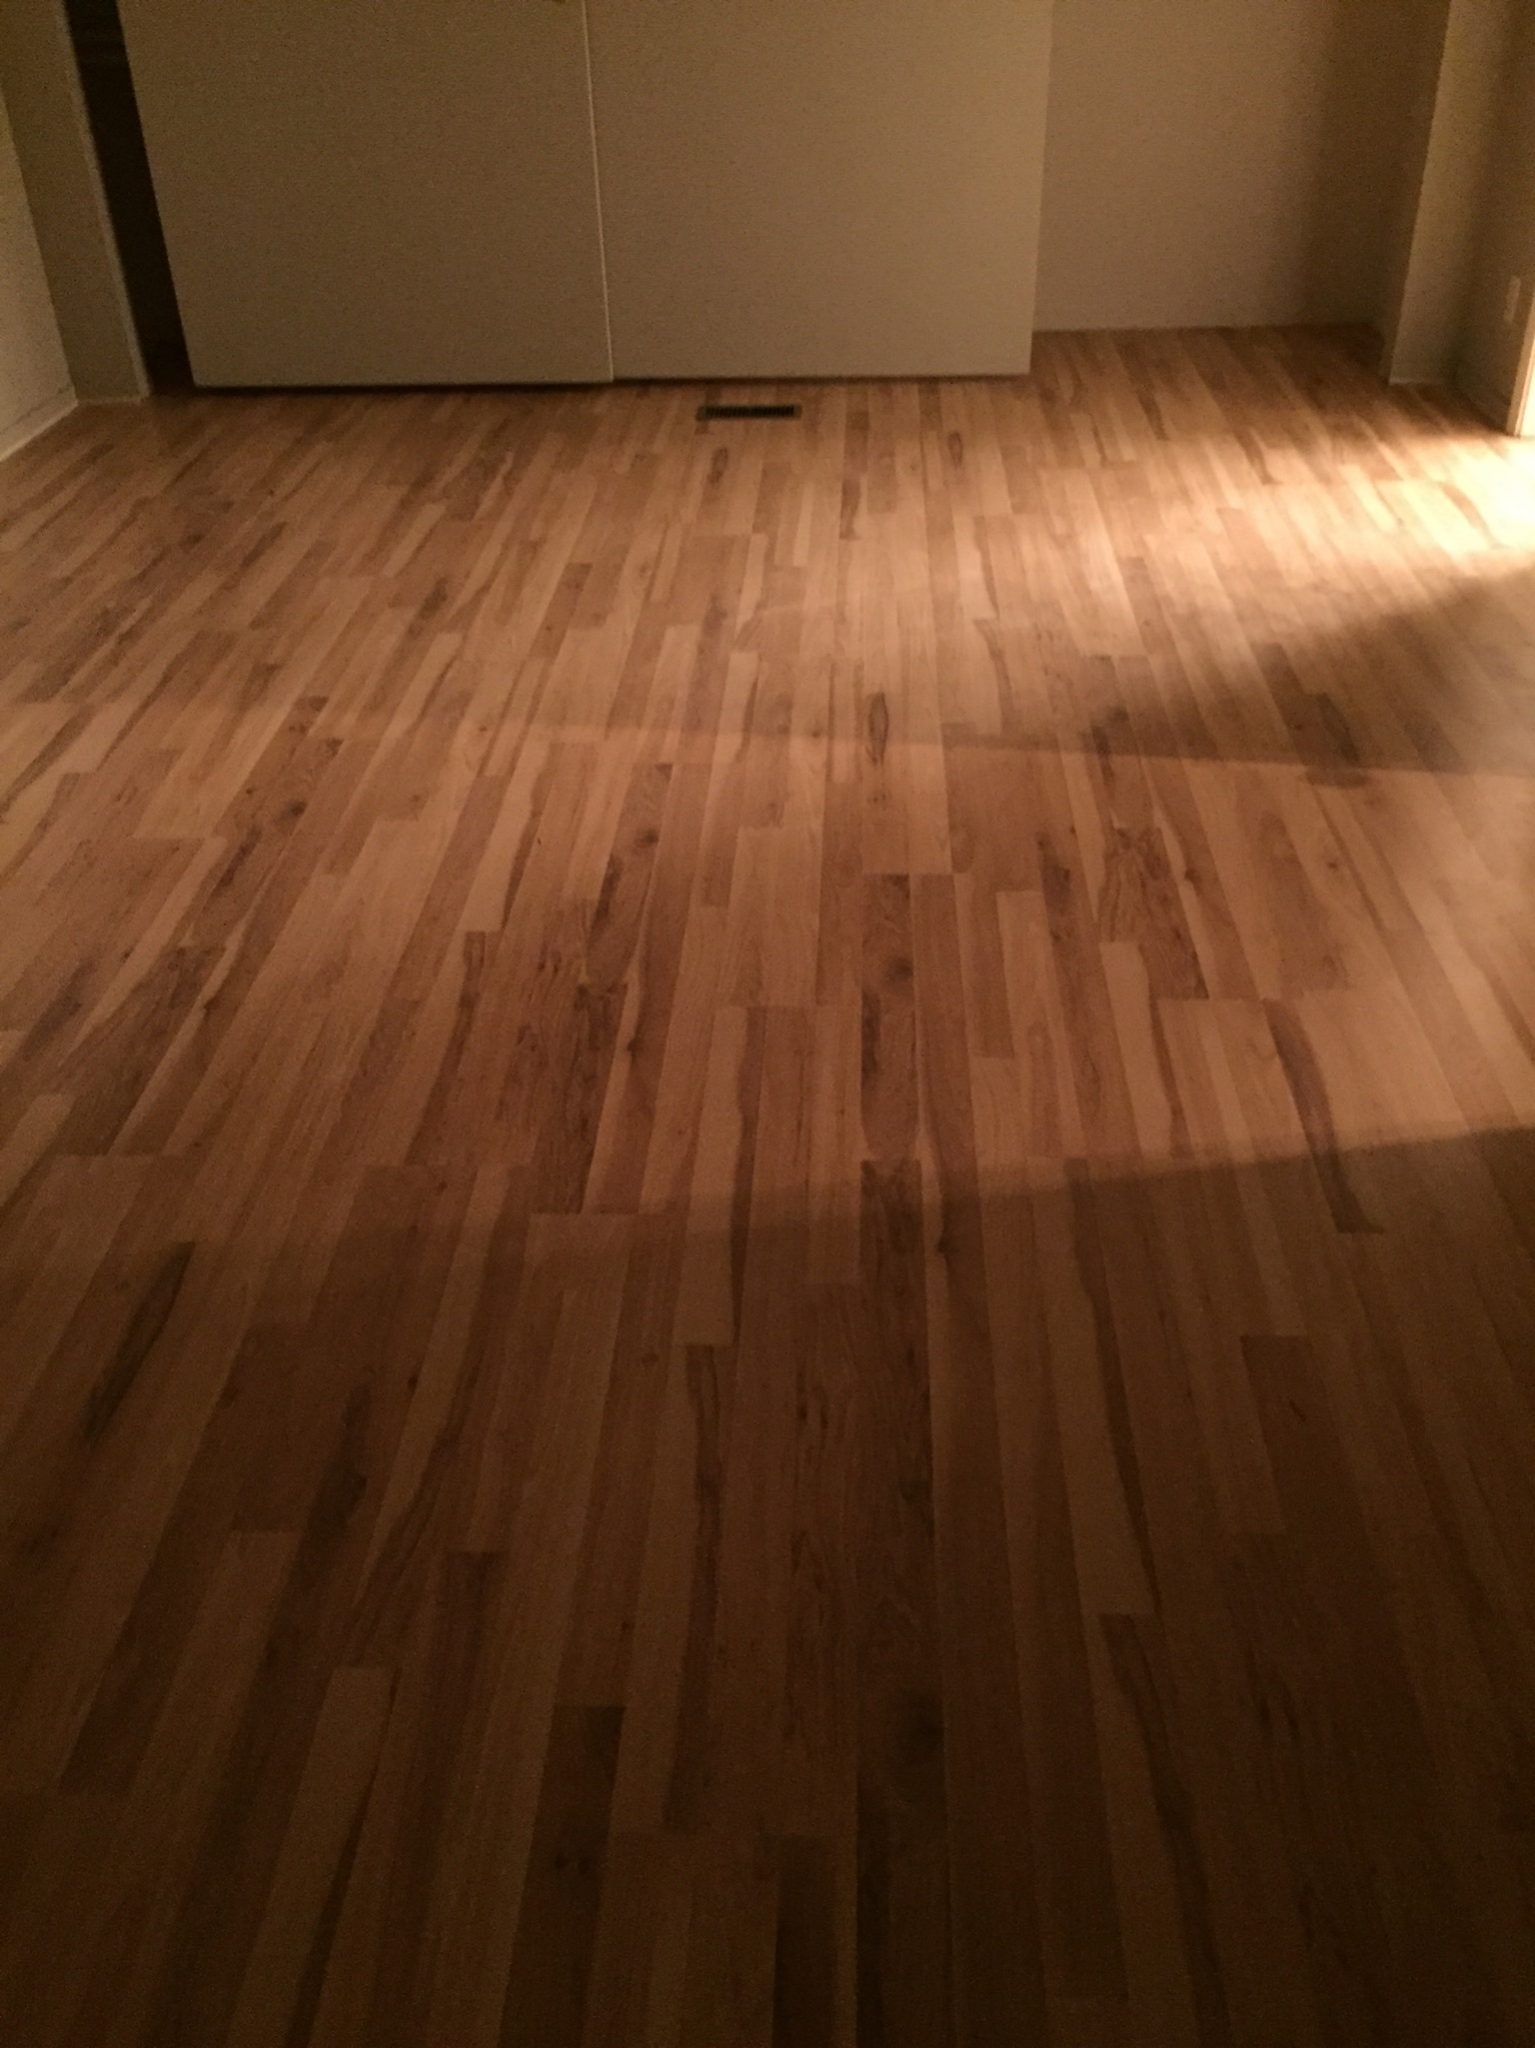 full room wood panel flooring